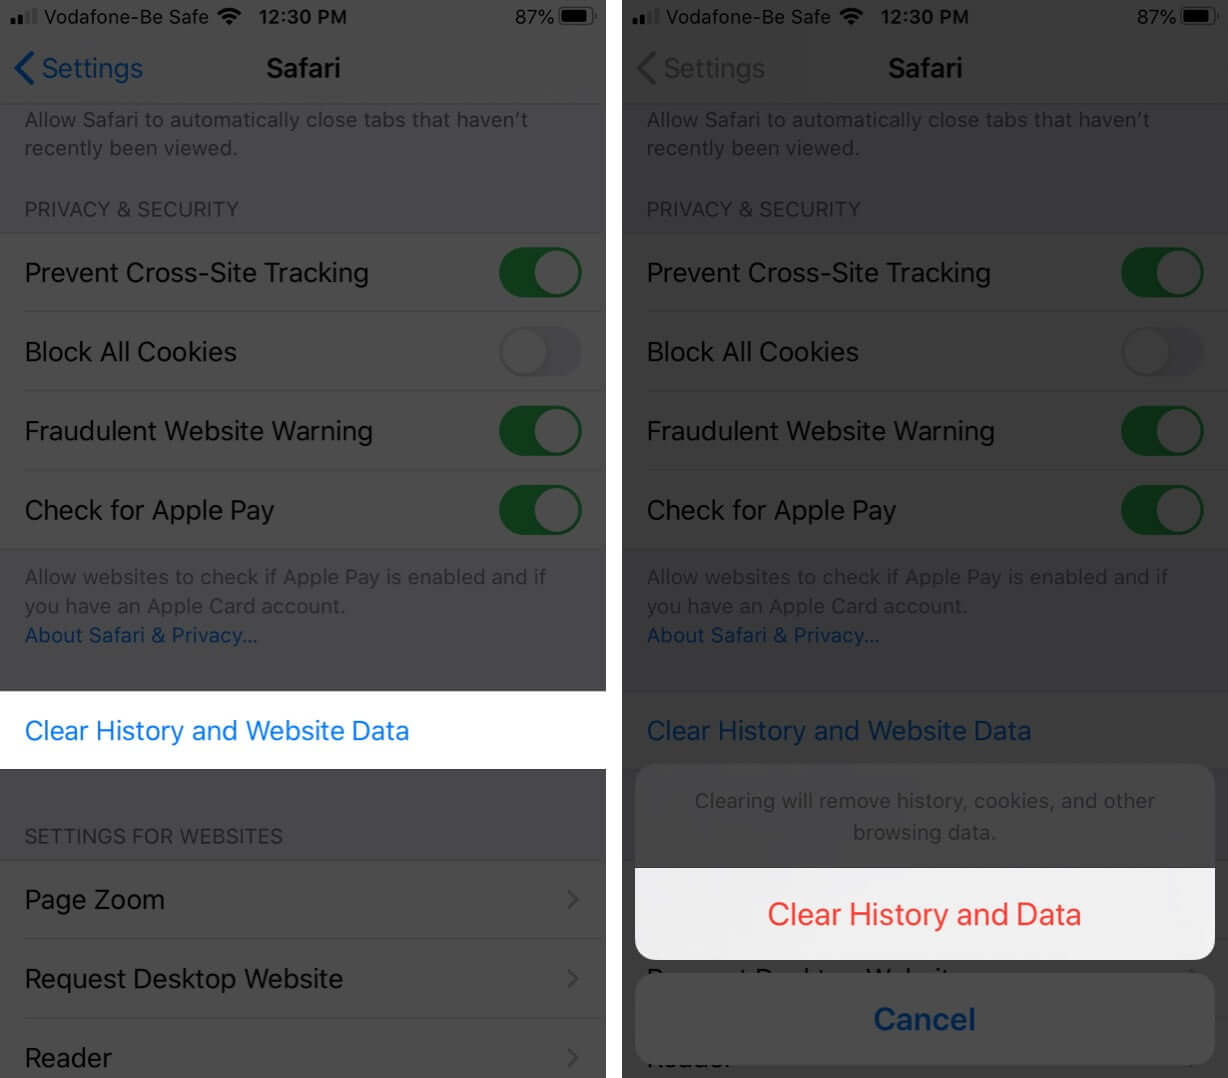 Tap on Clear History and Website Data to Delete History and Cookies in Safari on iPhone